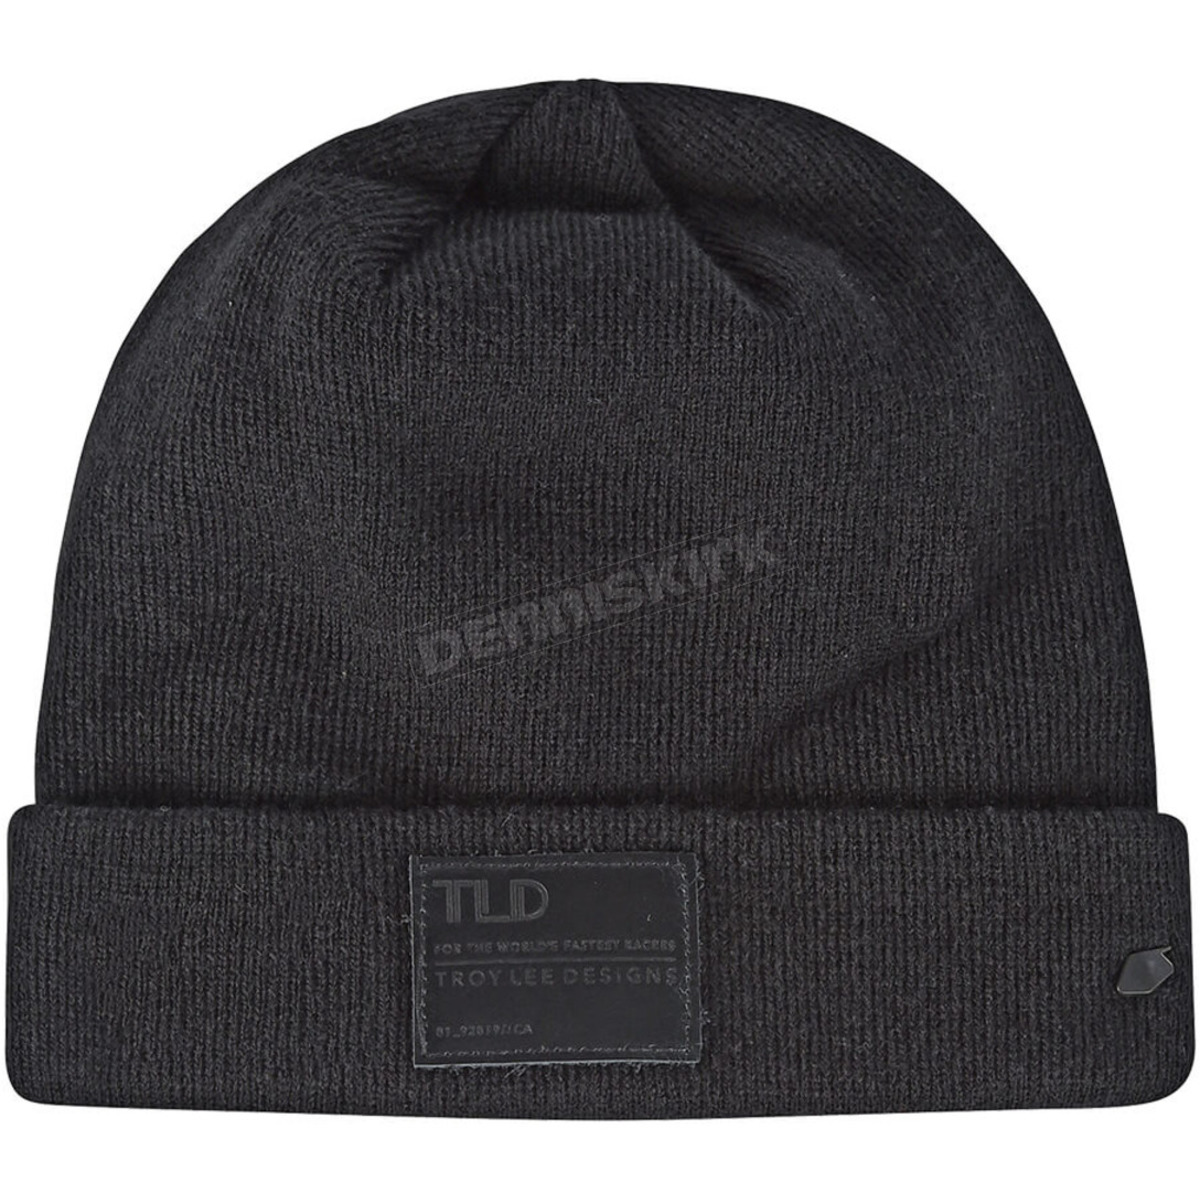 troy lee designs black stealth beanie 715437220 dirt bike snowmobile dennis kirk dennis kirk